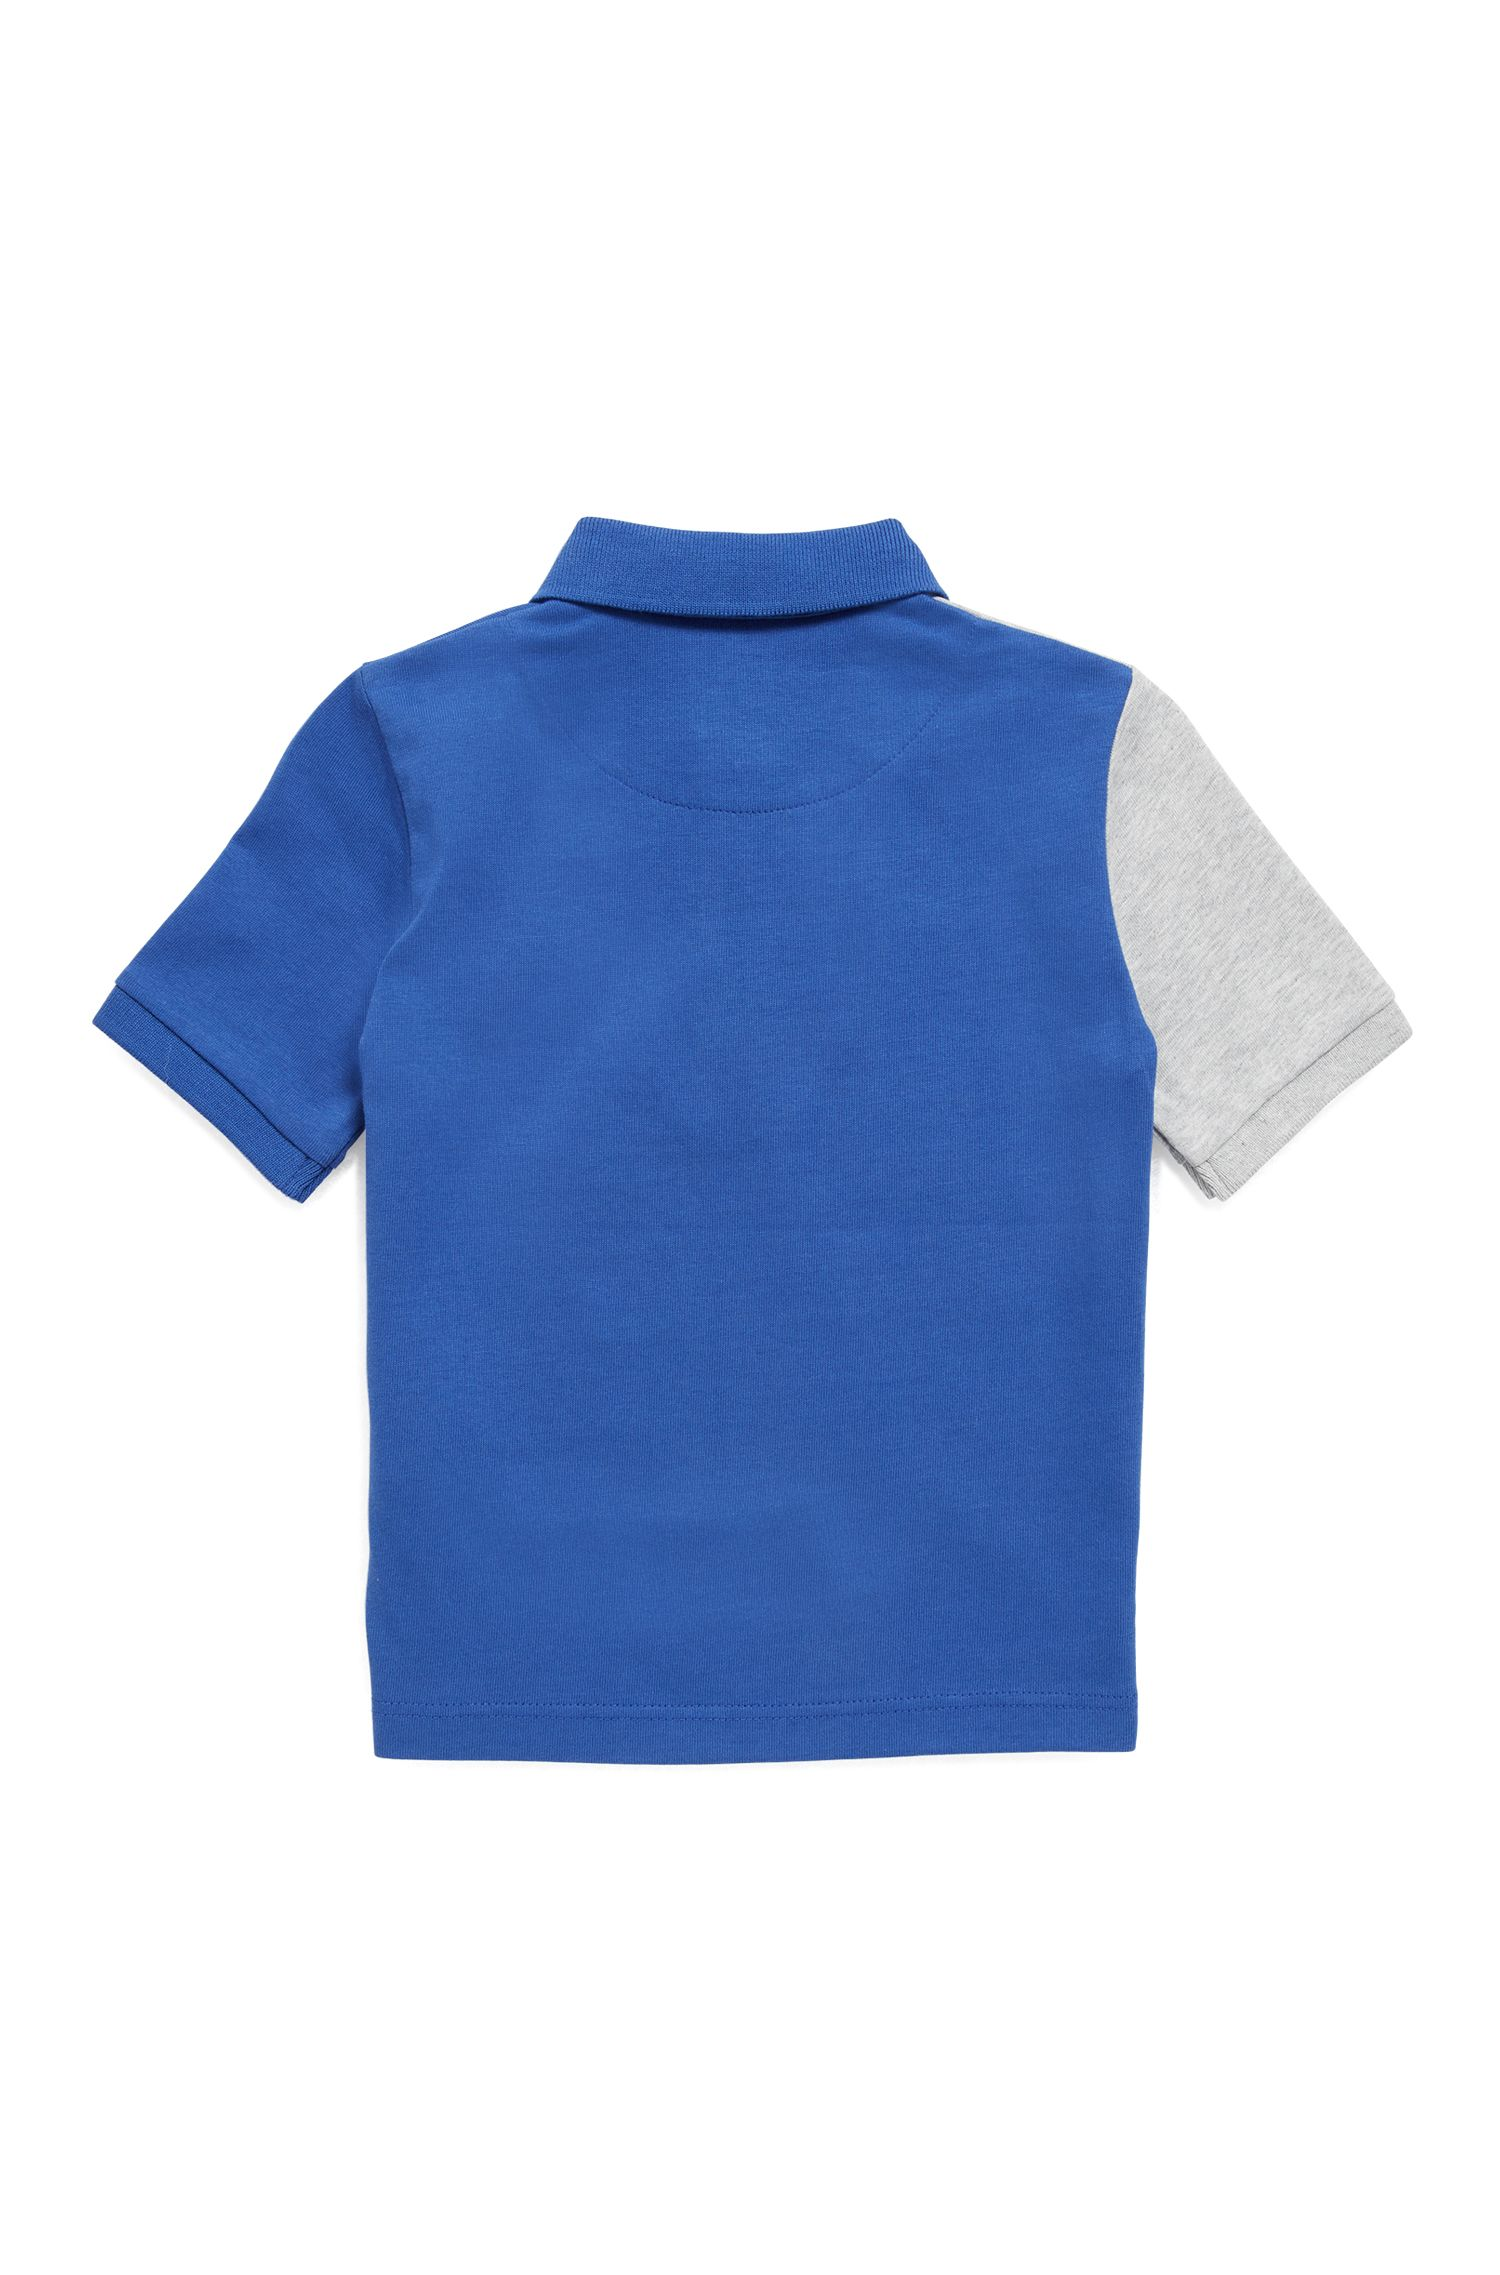 Kids' polo shirt in single-jersey cotton